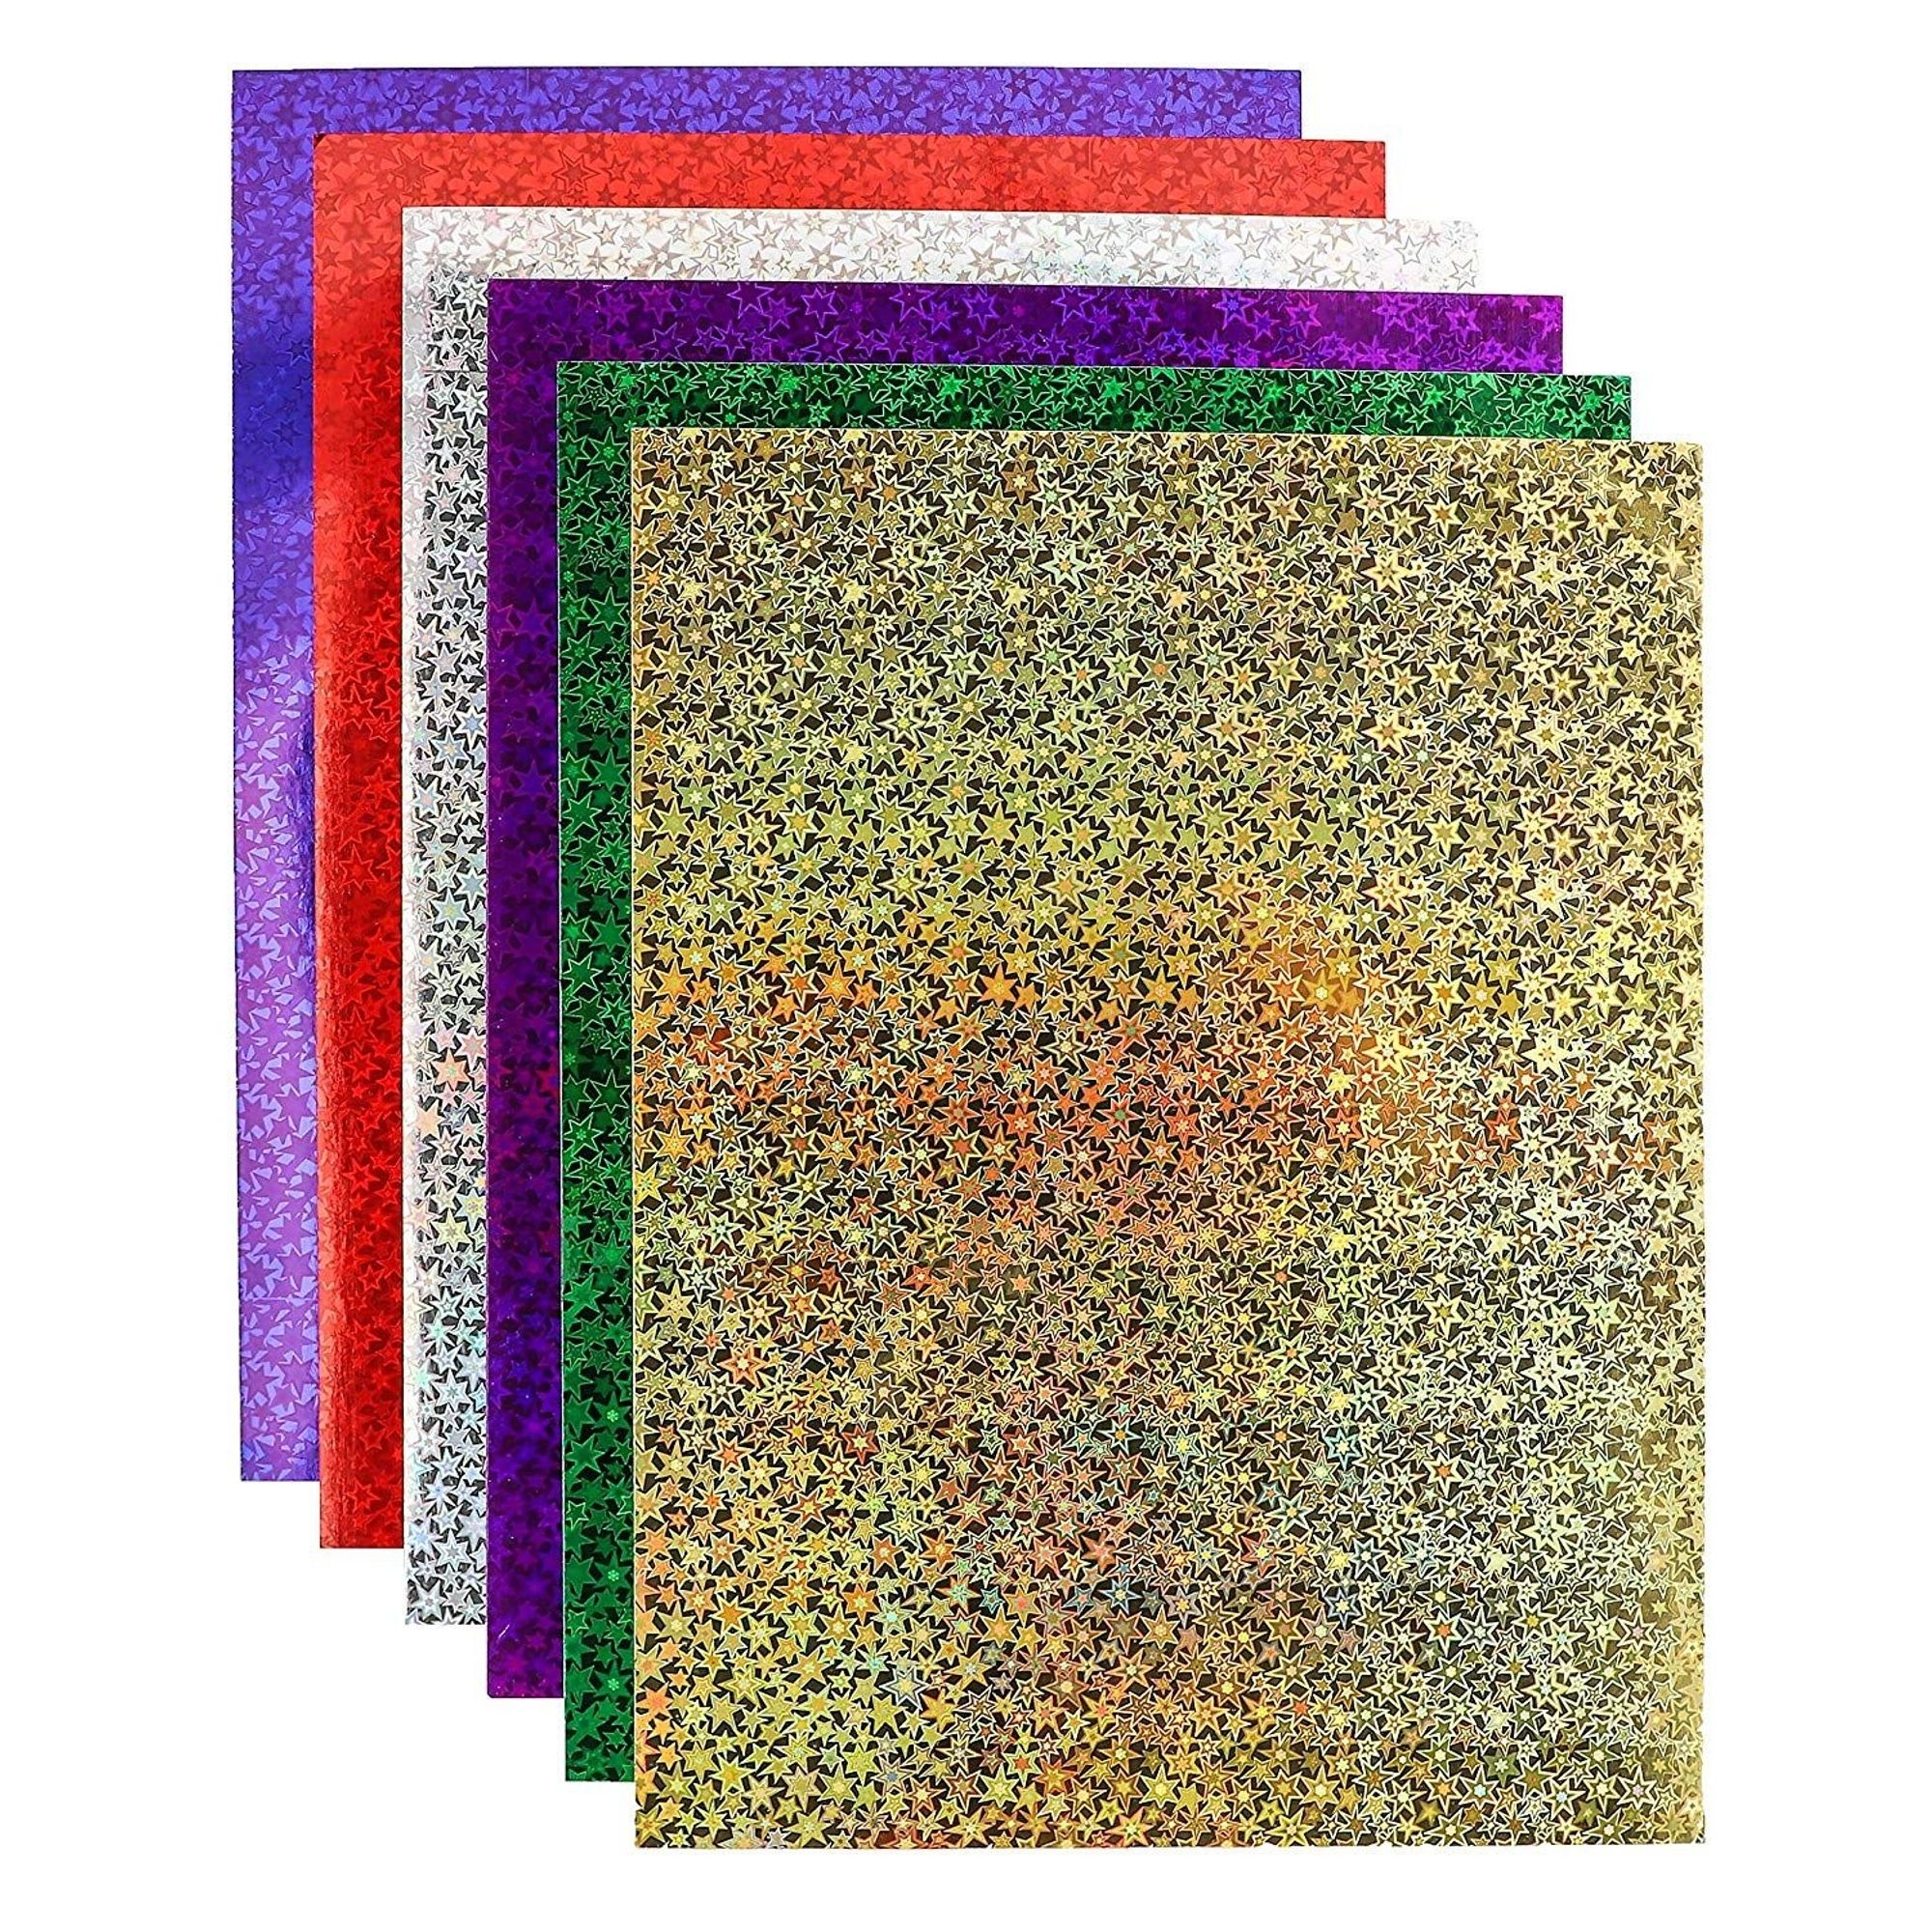 Bright Creations 72-Sheets Holographic Glitter Cardstock Paper 250 Gsm (8.5 X 11 In, 6 Assorted